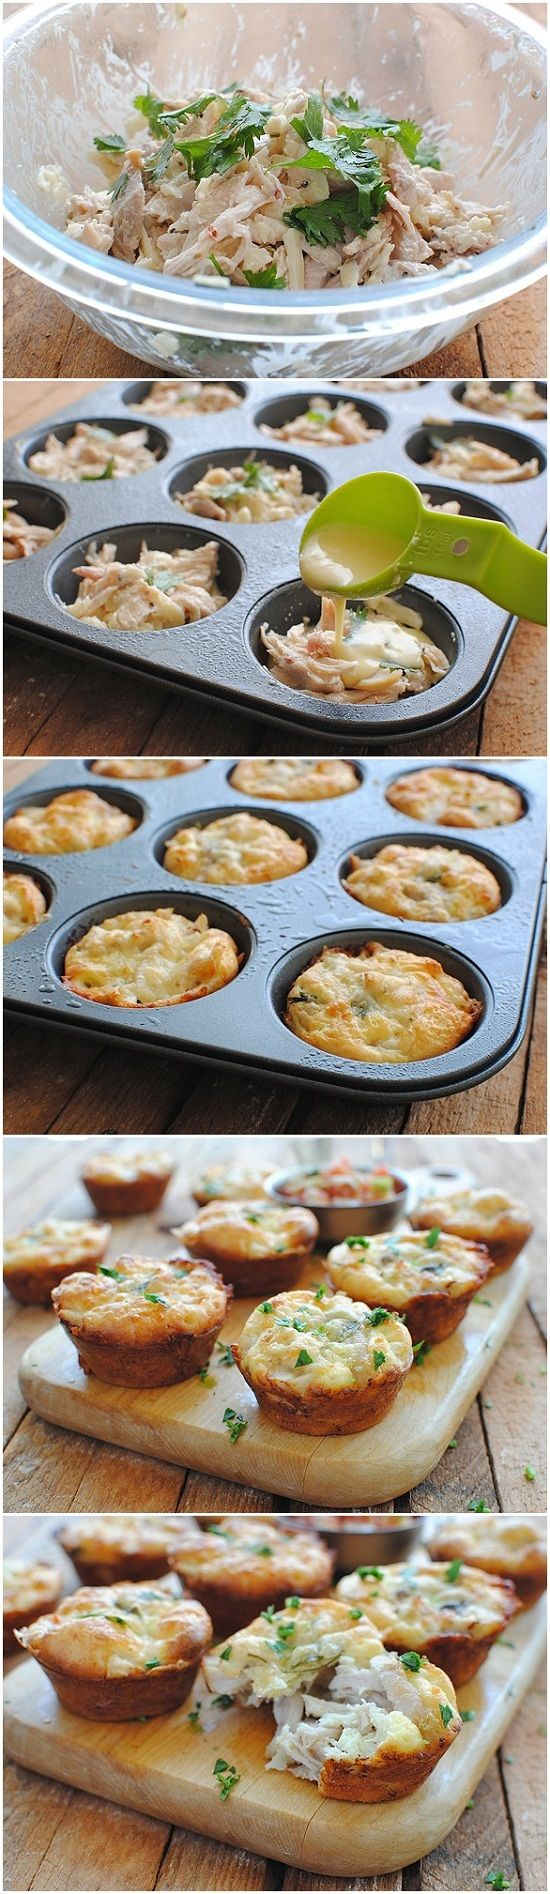 Mini Tex-Mex Chicken + Cheese Pies...You can reduce the amount of chicken & add vegetables like corn, peppers, whatever you like.